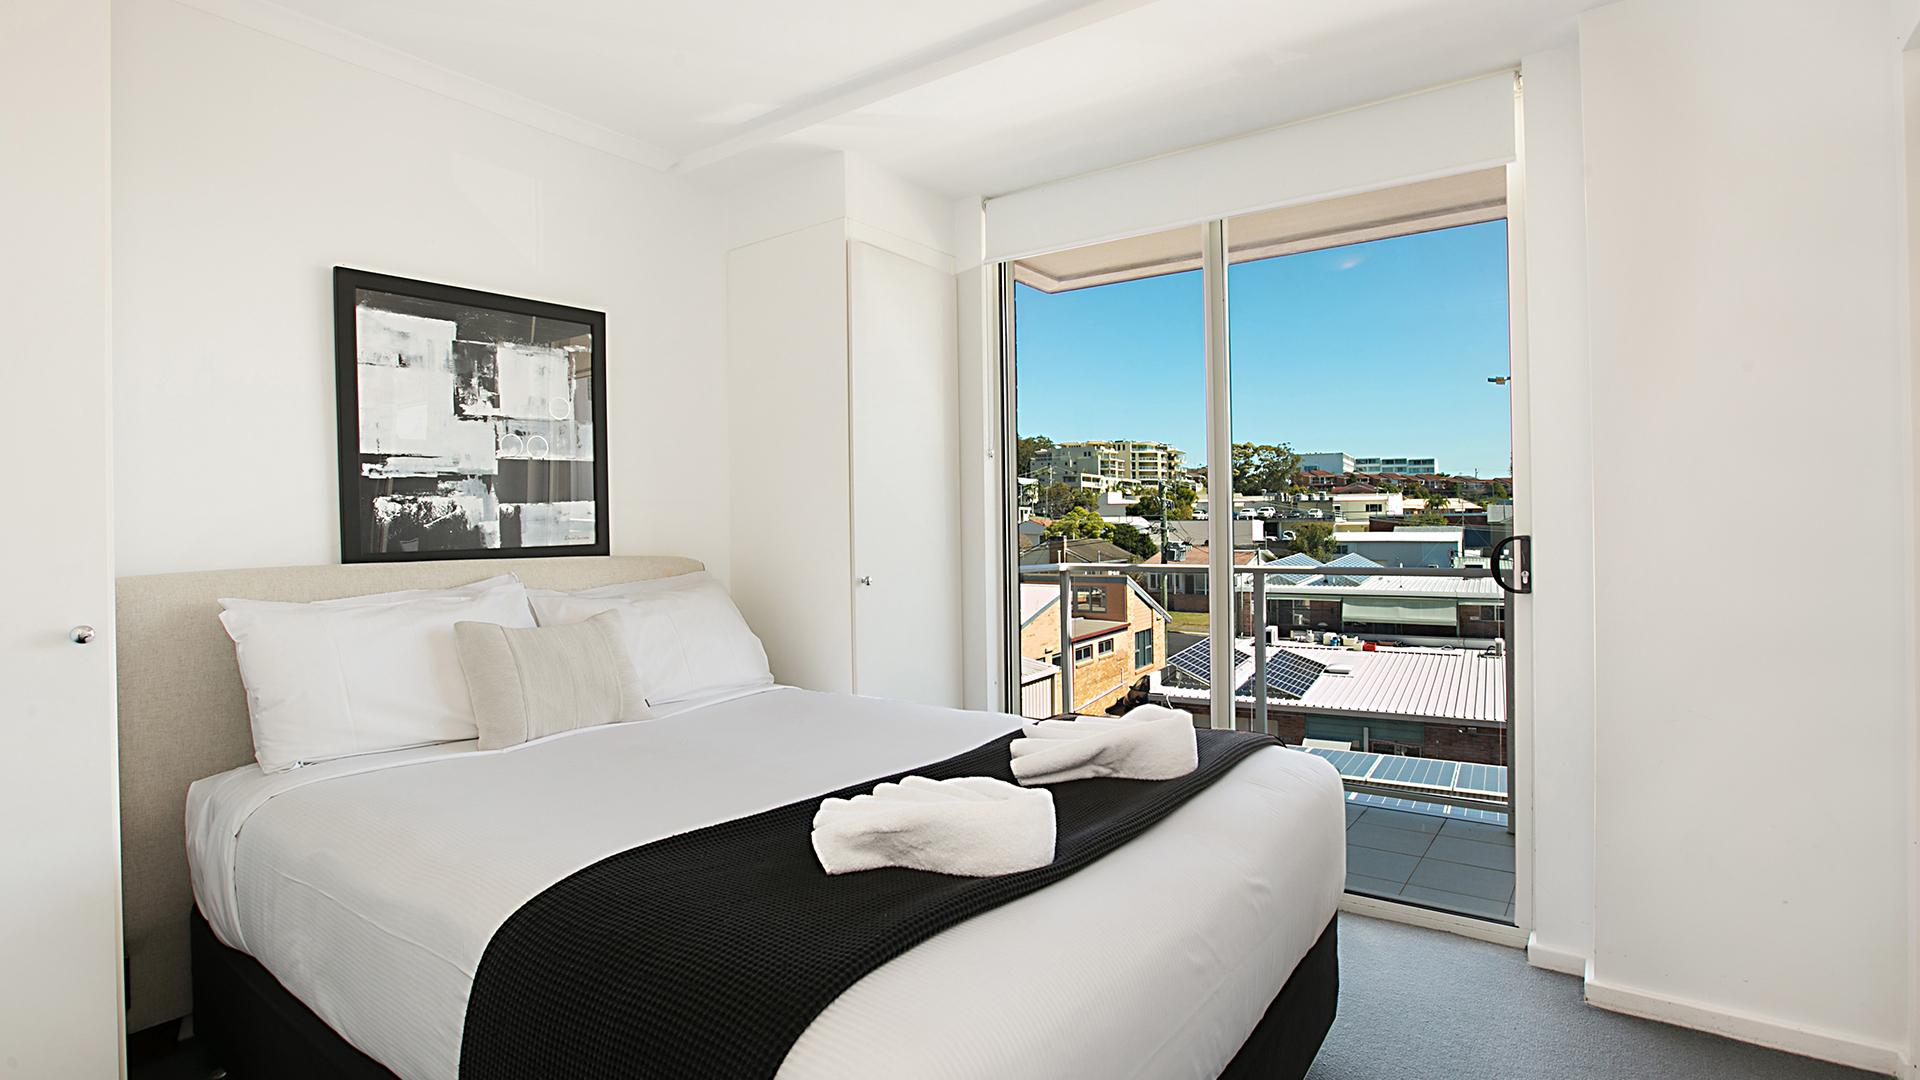 Two-Bedroom Apartment Standard image 1 at Mantra Nelson Bay by Port Stephens Council, New South Wales, Australia